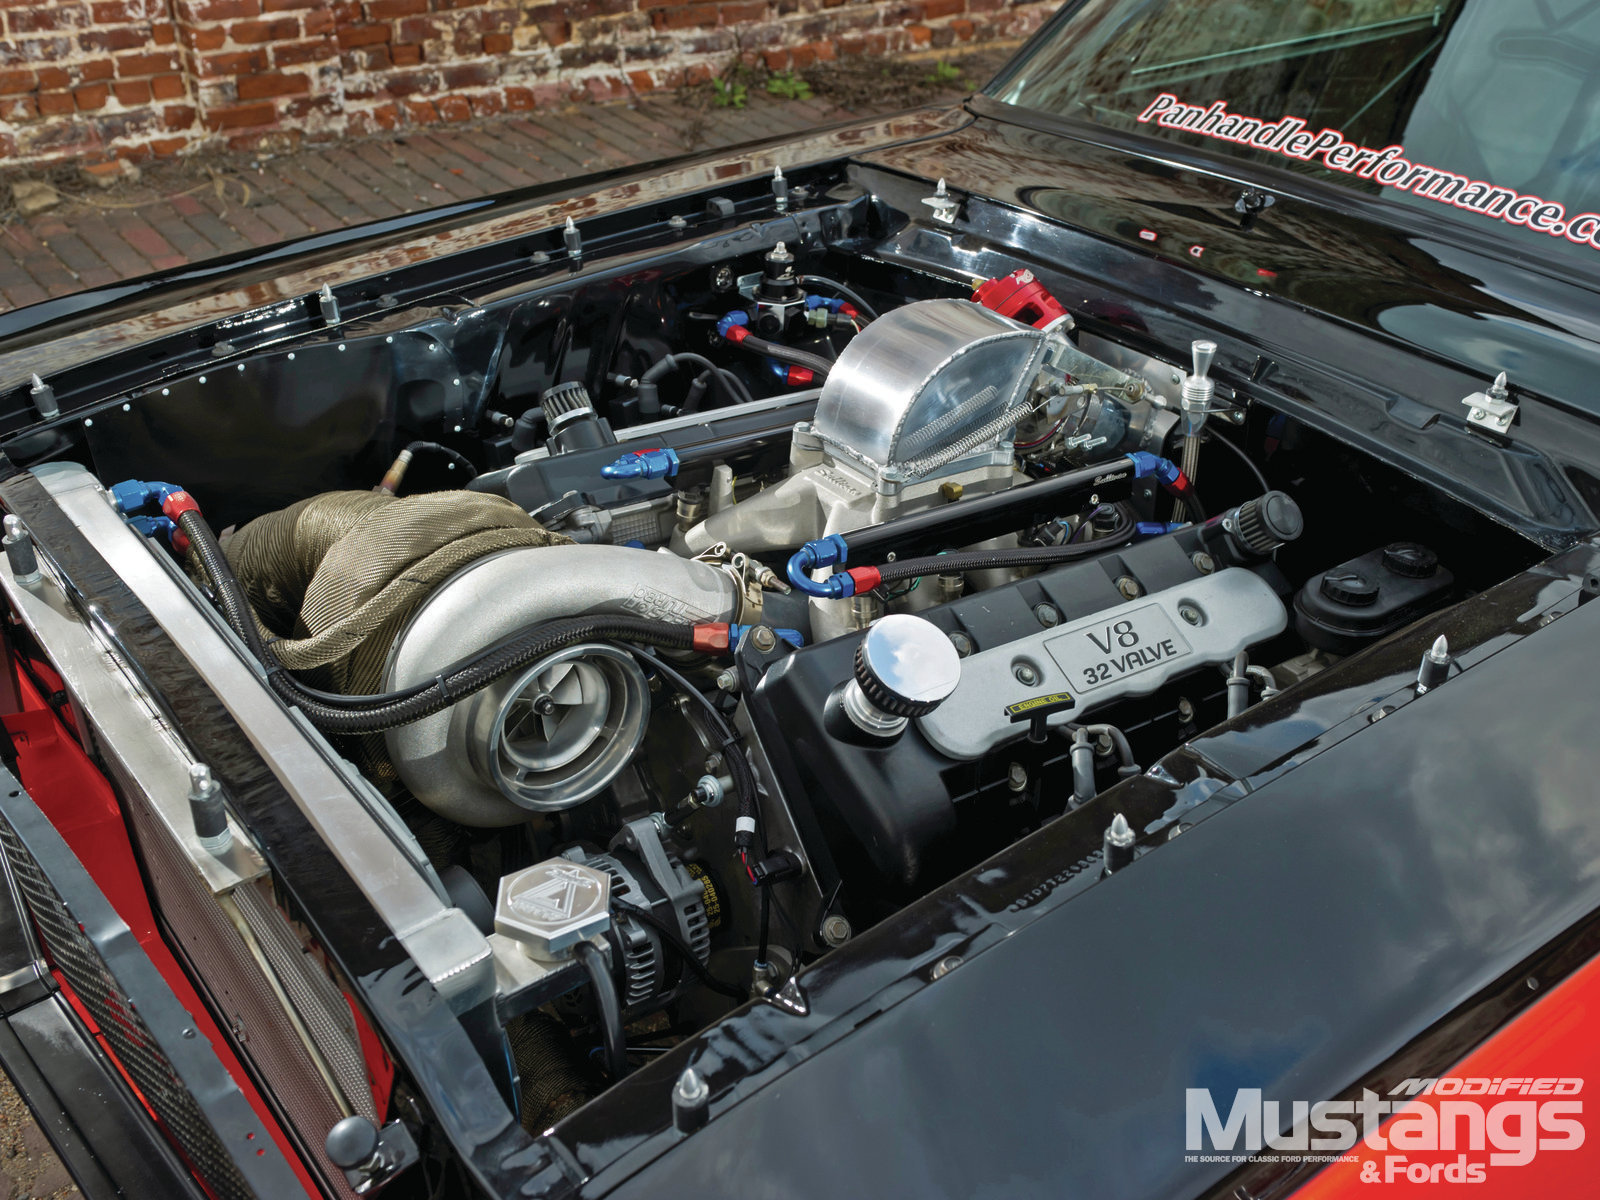 Mdmp 1209 04 1966 Ford Mustang Turbo Lover